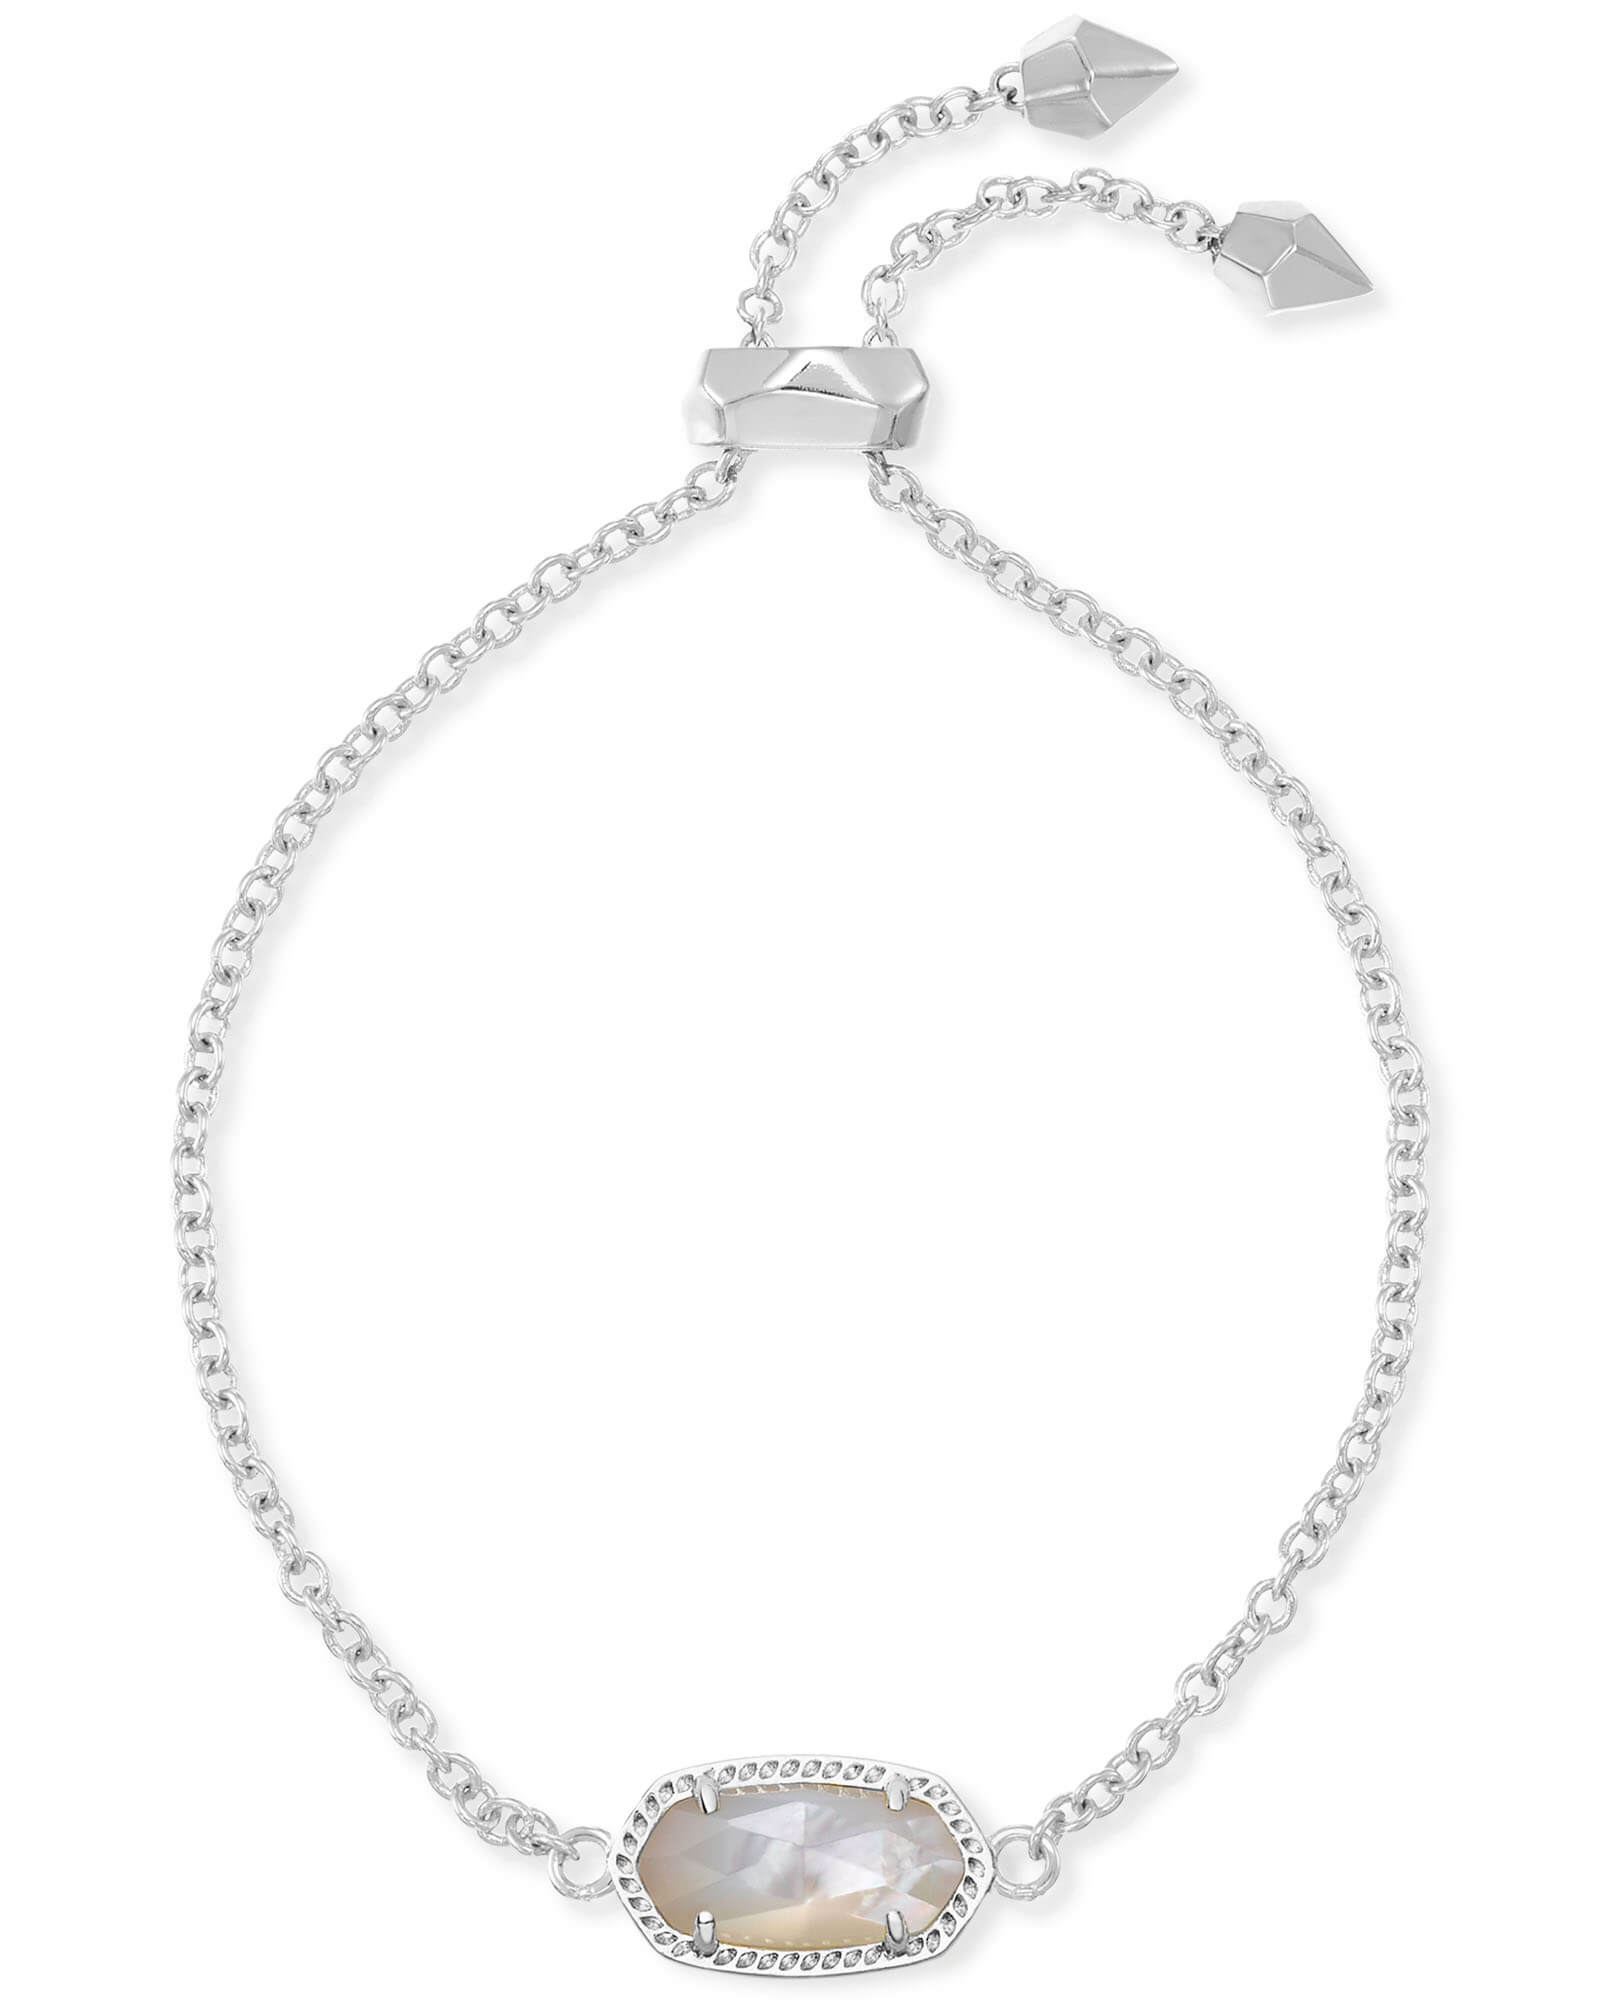 Elaina Silver Adjustable Chain Bracelet In Ivory Mother of Pearl